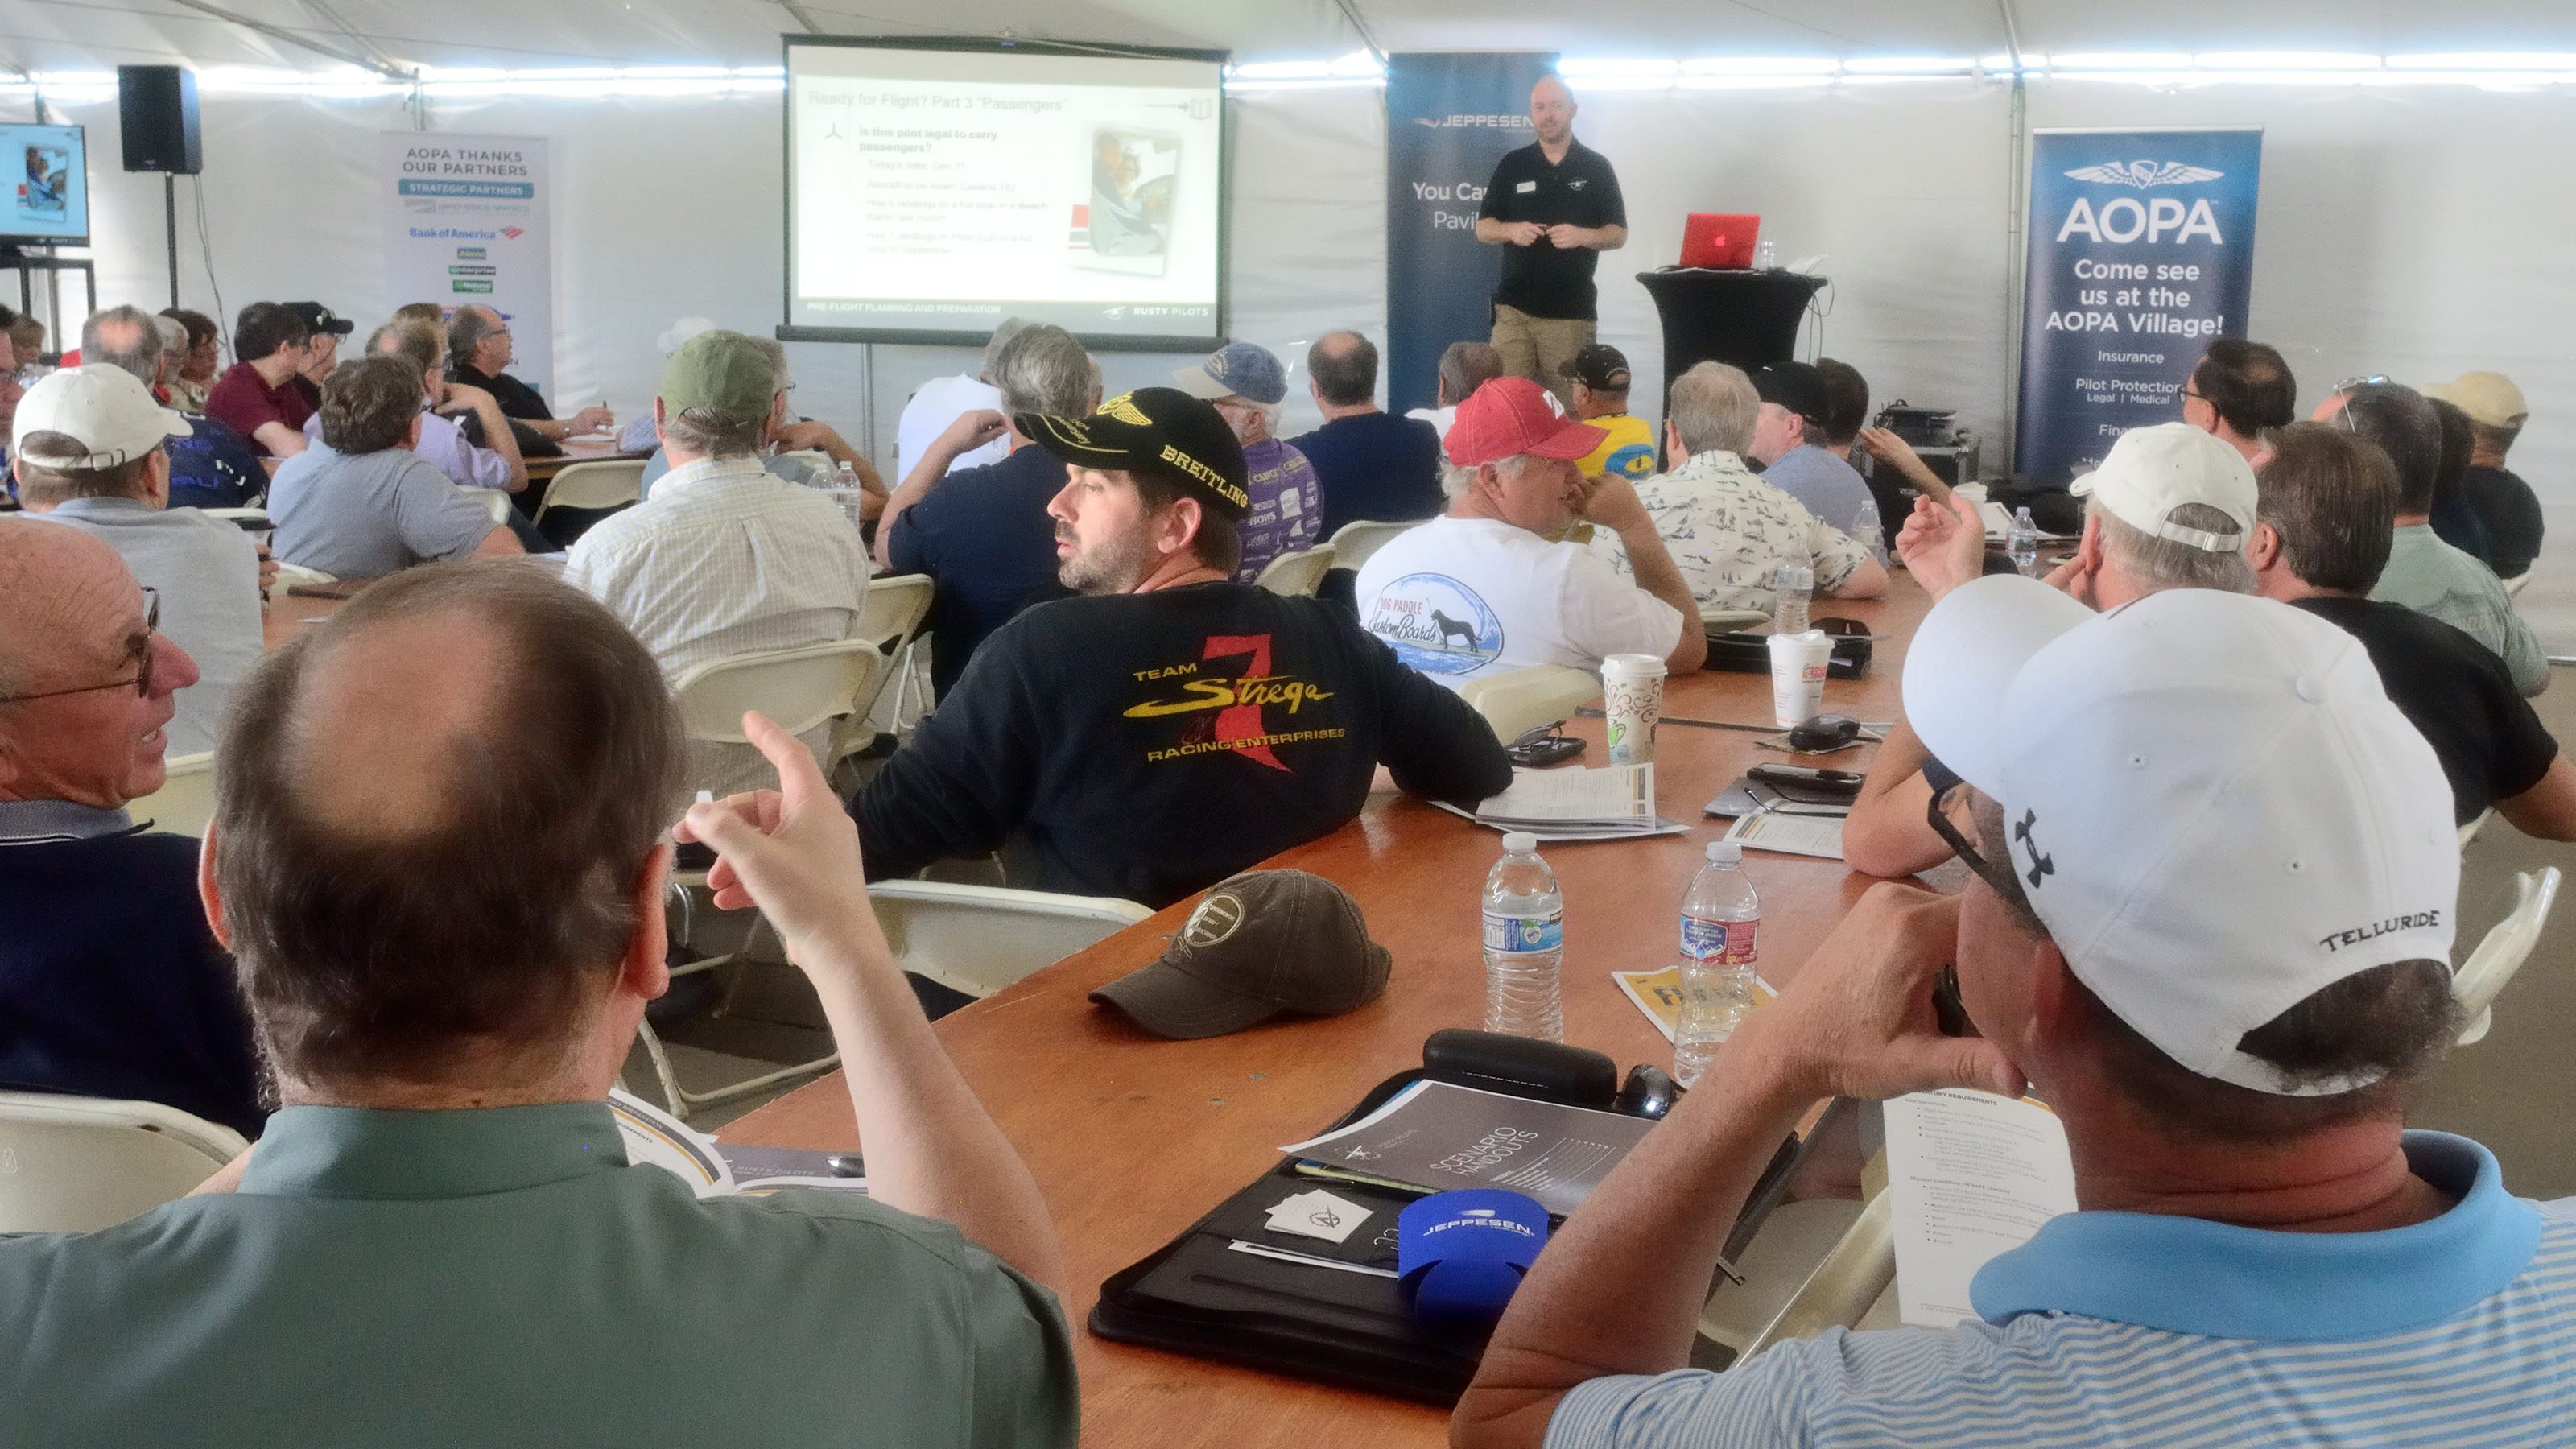 Chris Moser, with AOPA's You Can Fly initiative, leads a Rusty Pilots seminar at the AOPA Fly-In at Camarillo, California. Photo by Mike Collins.